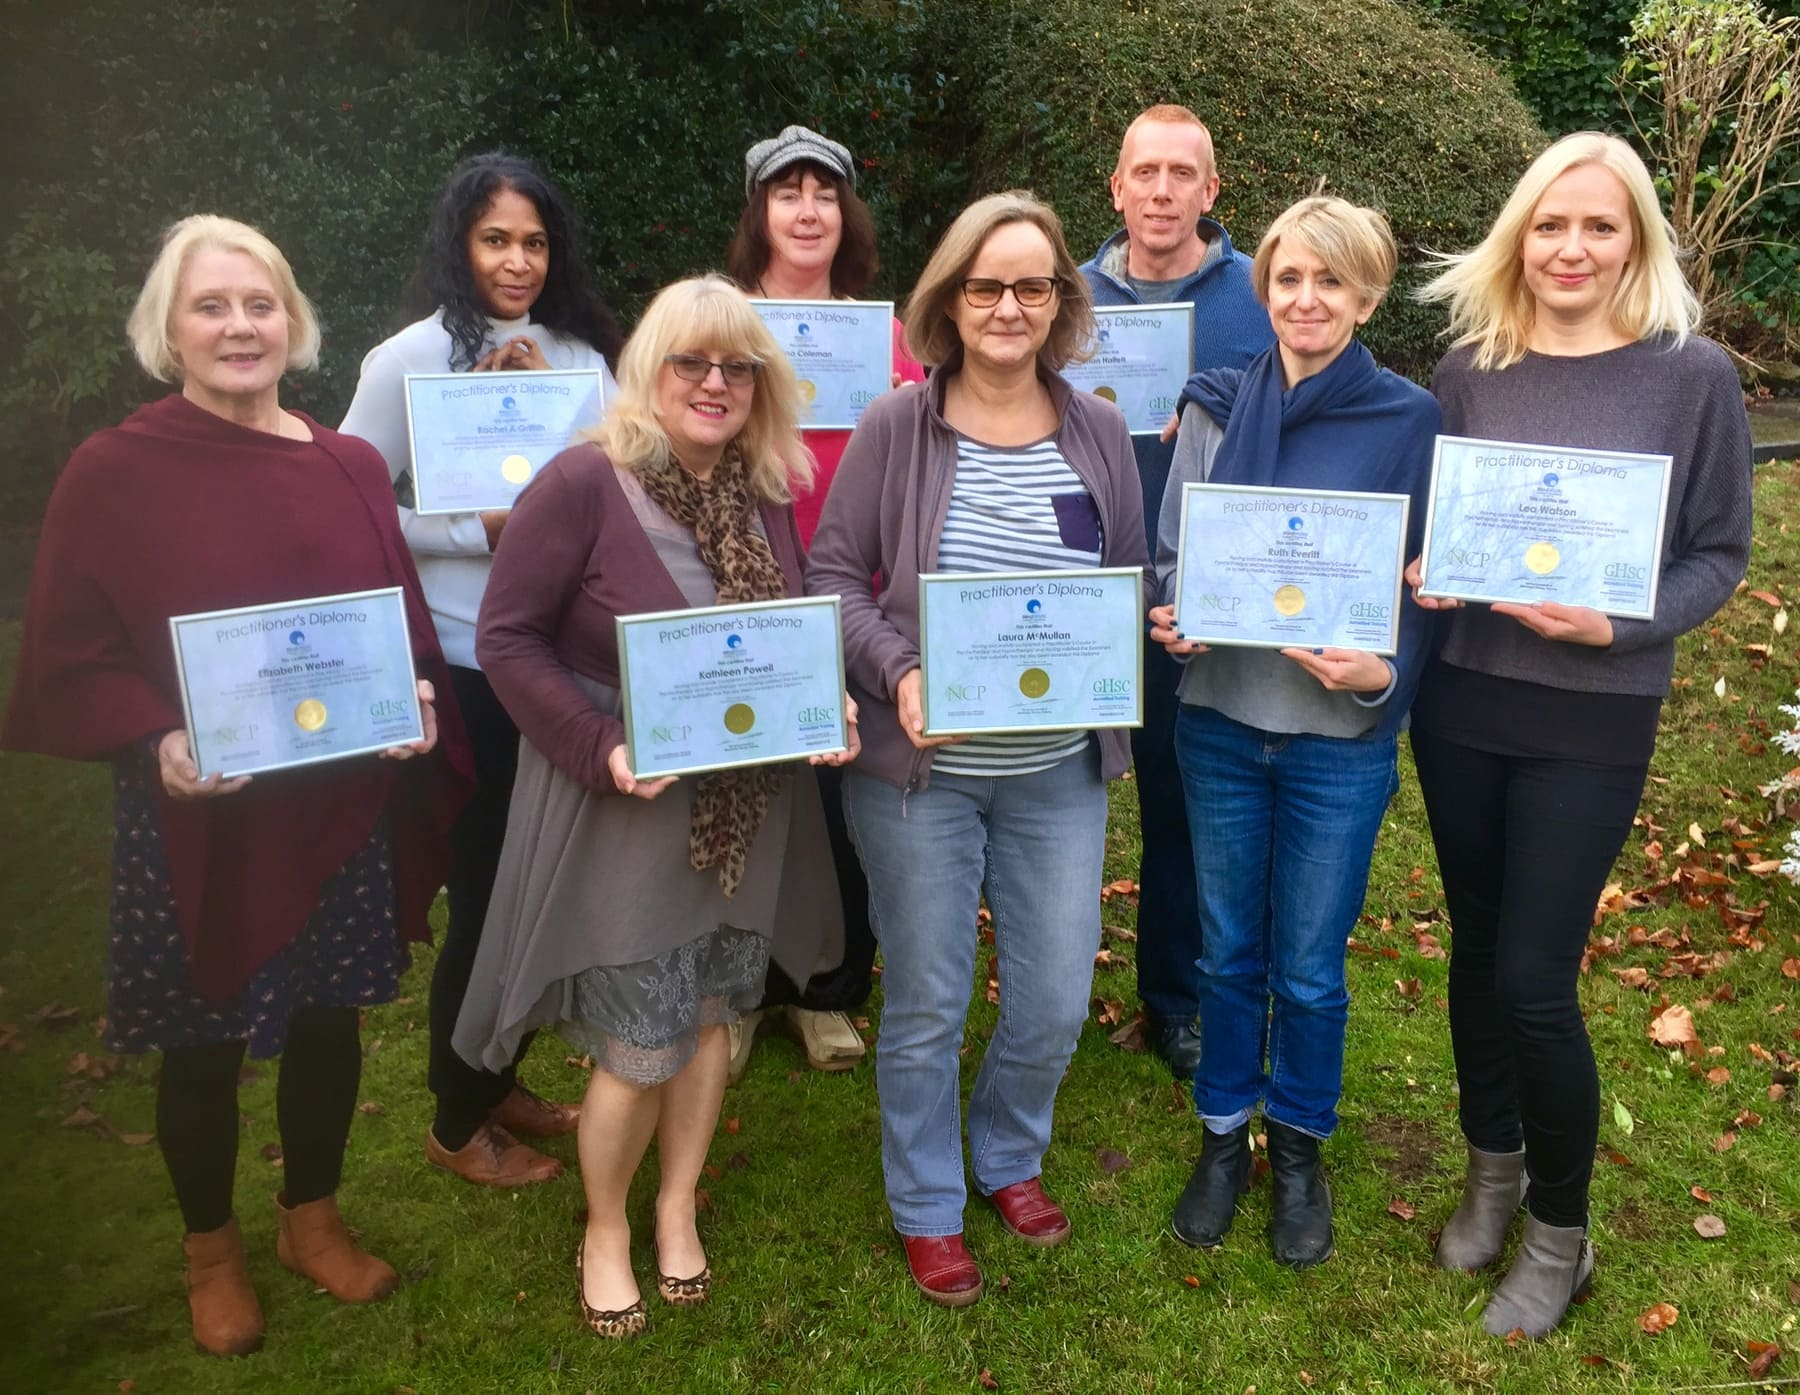 MindWorks Graduates - December 2018